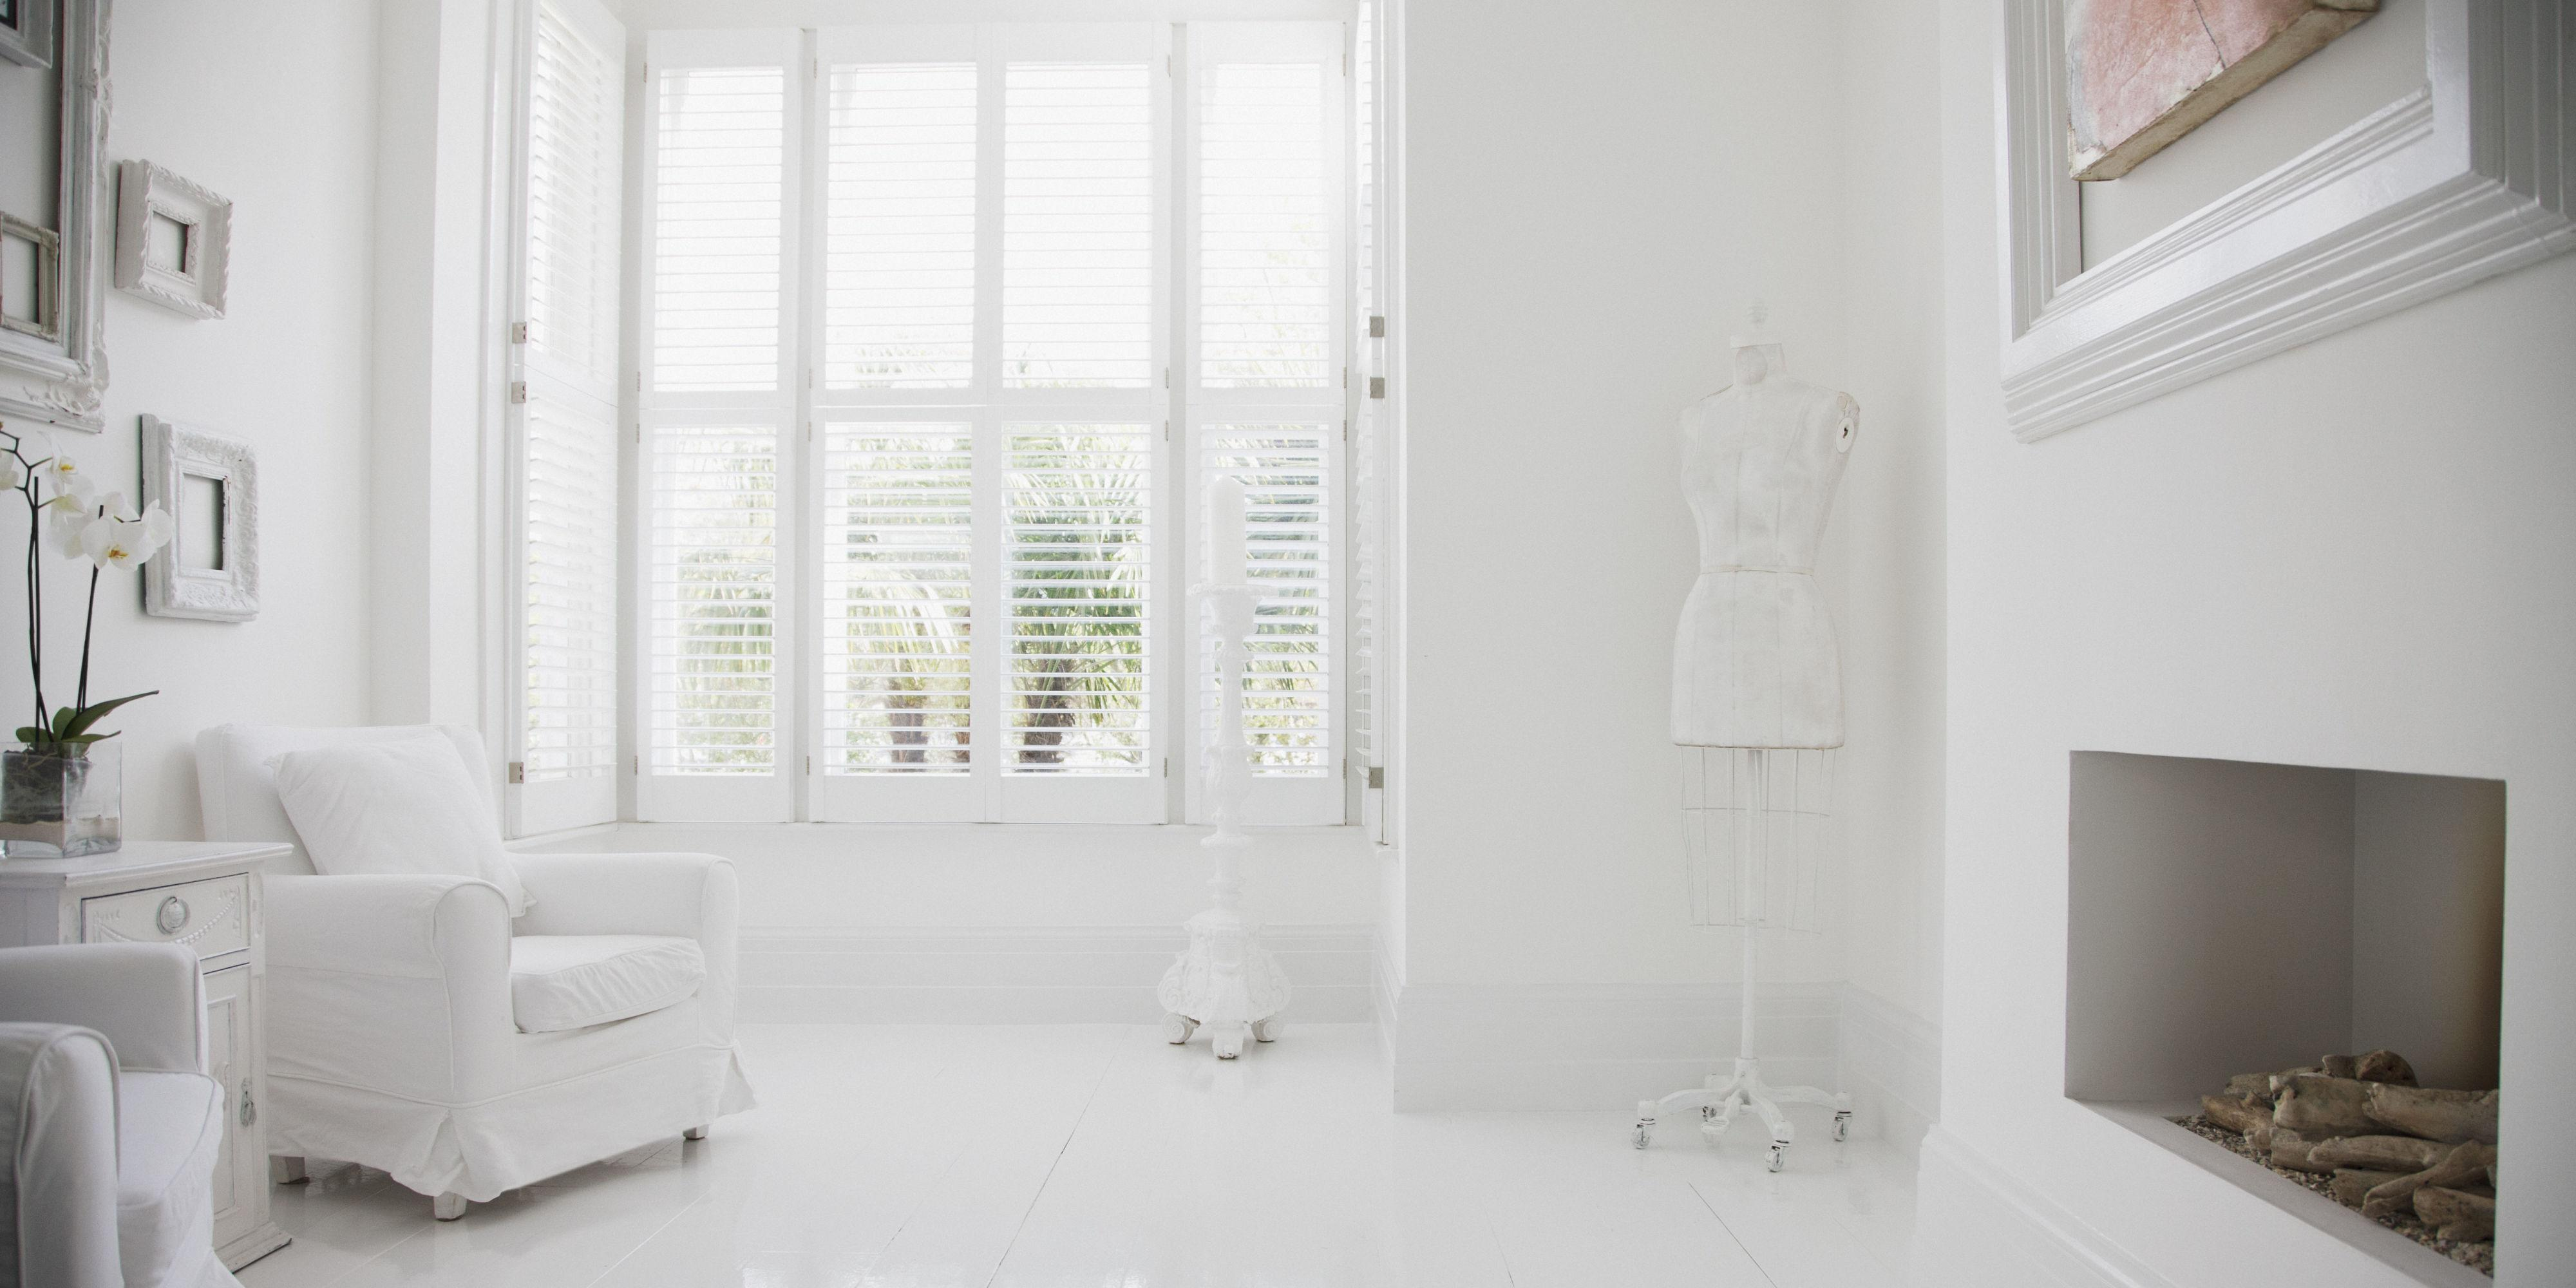 Best White Paint For Walls 223 chic shades of white paint